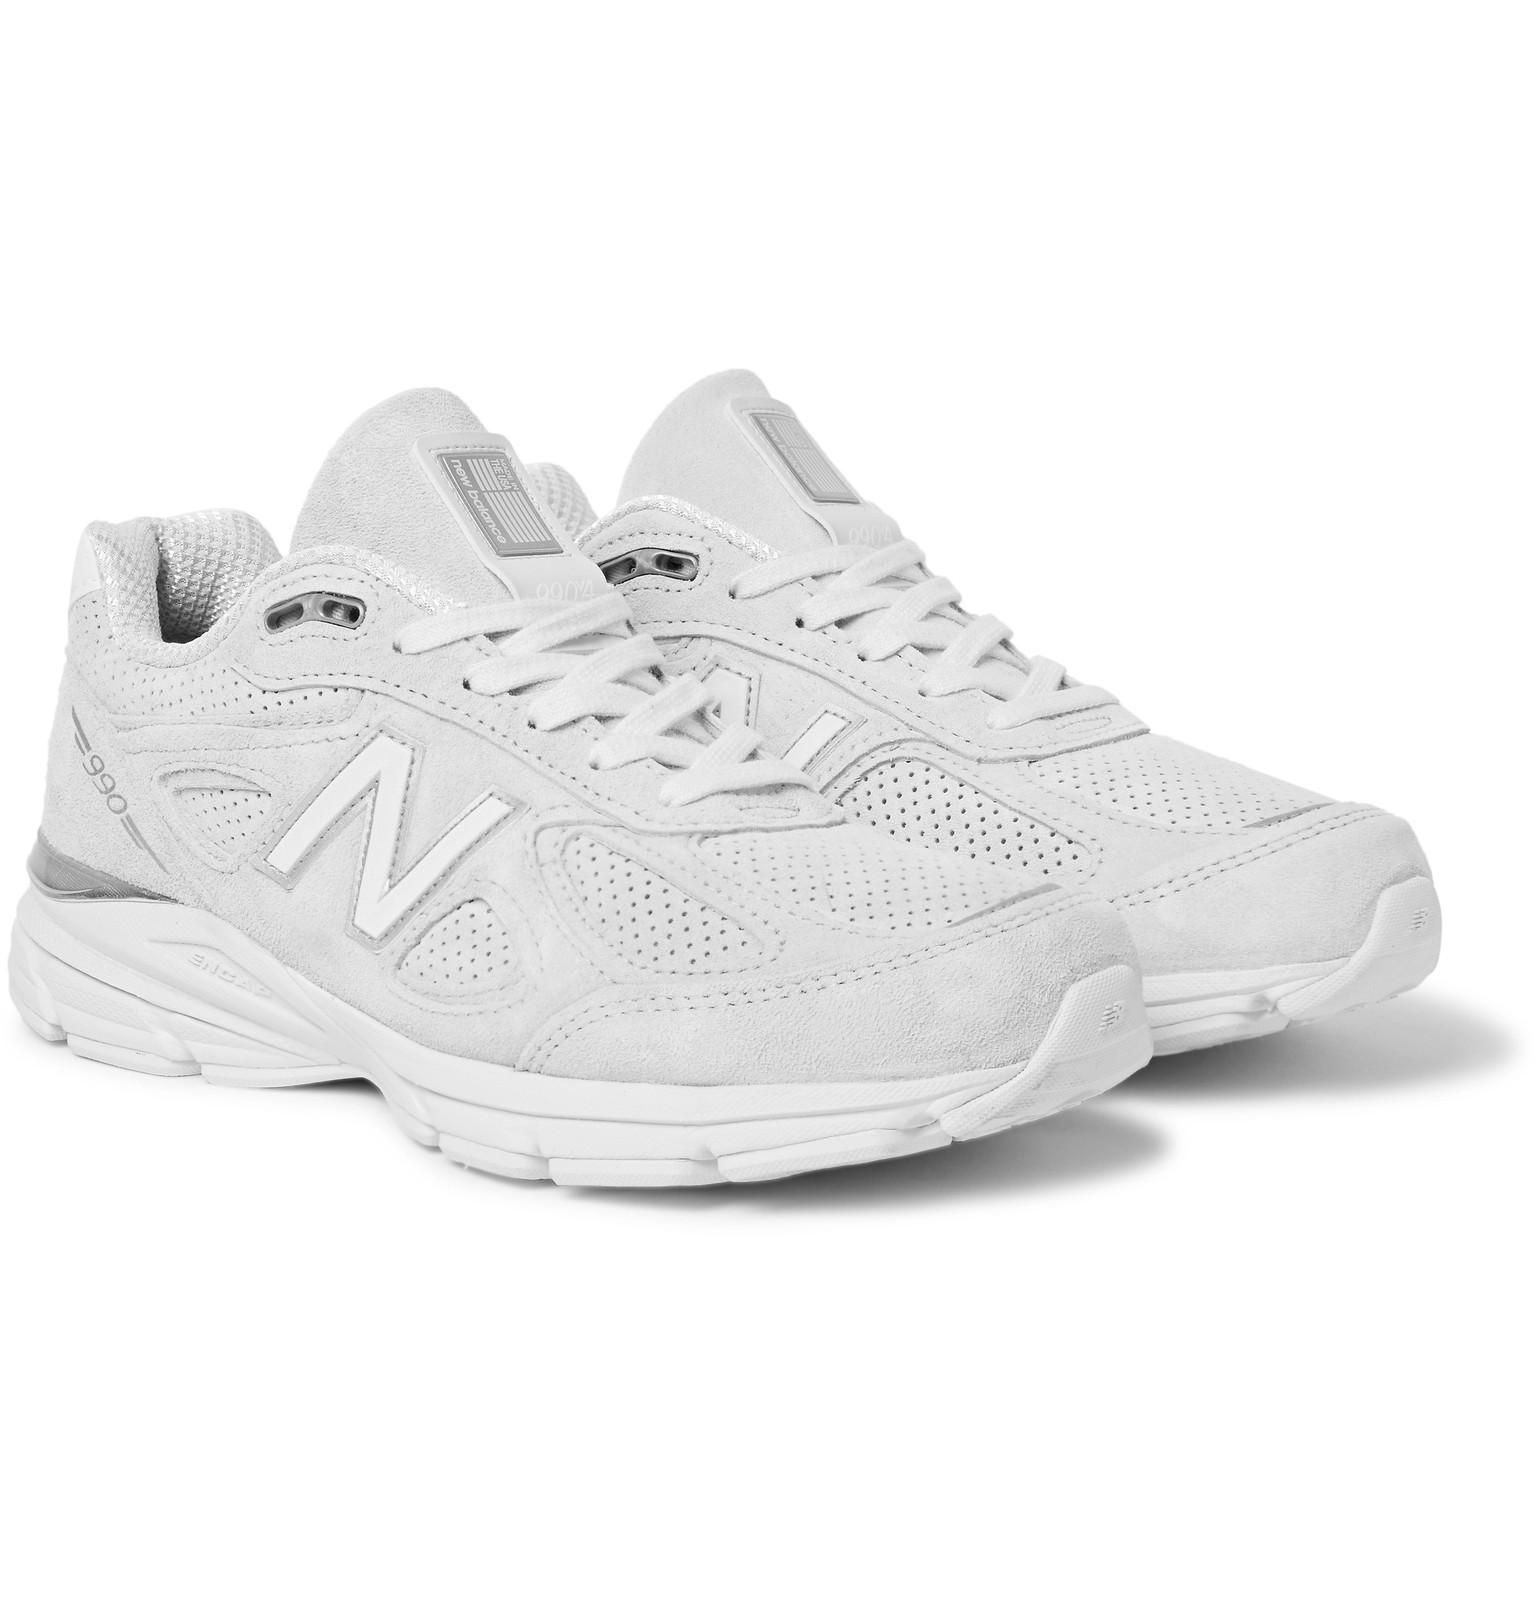 22a01495eab0d New Balance 990 Suede Sneakers in White for Men - Lyst